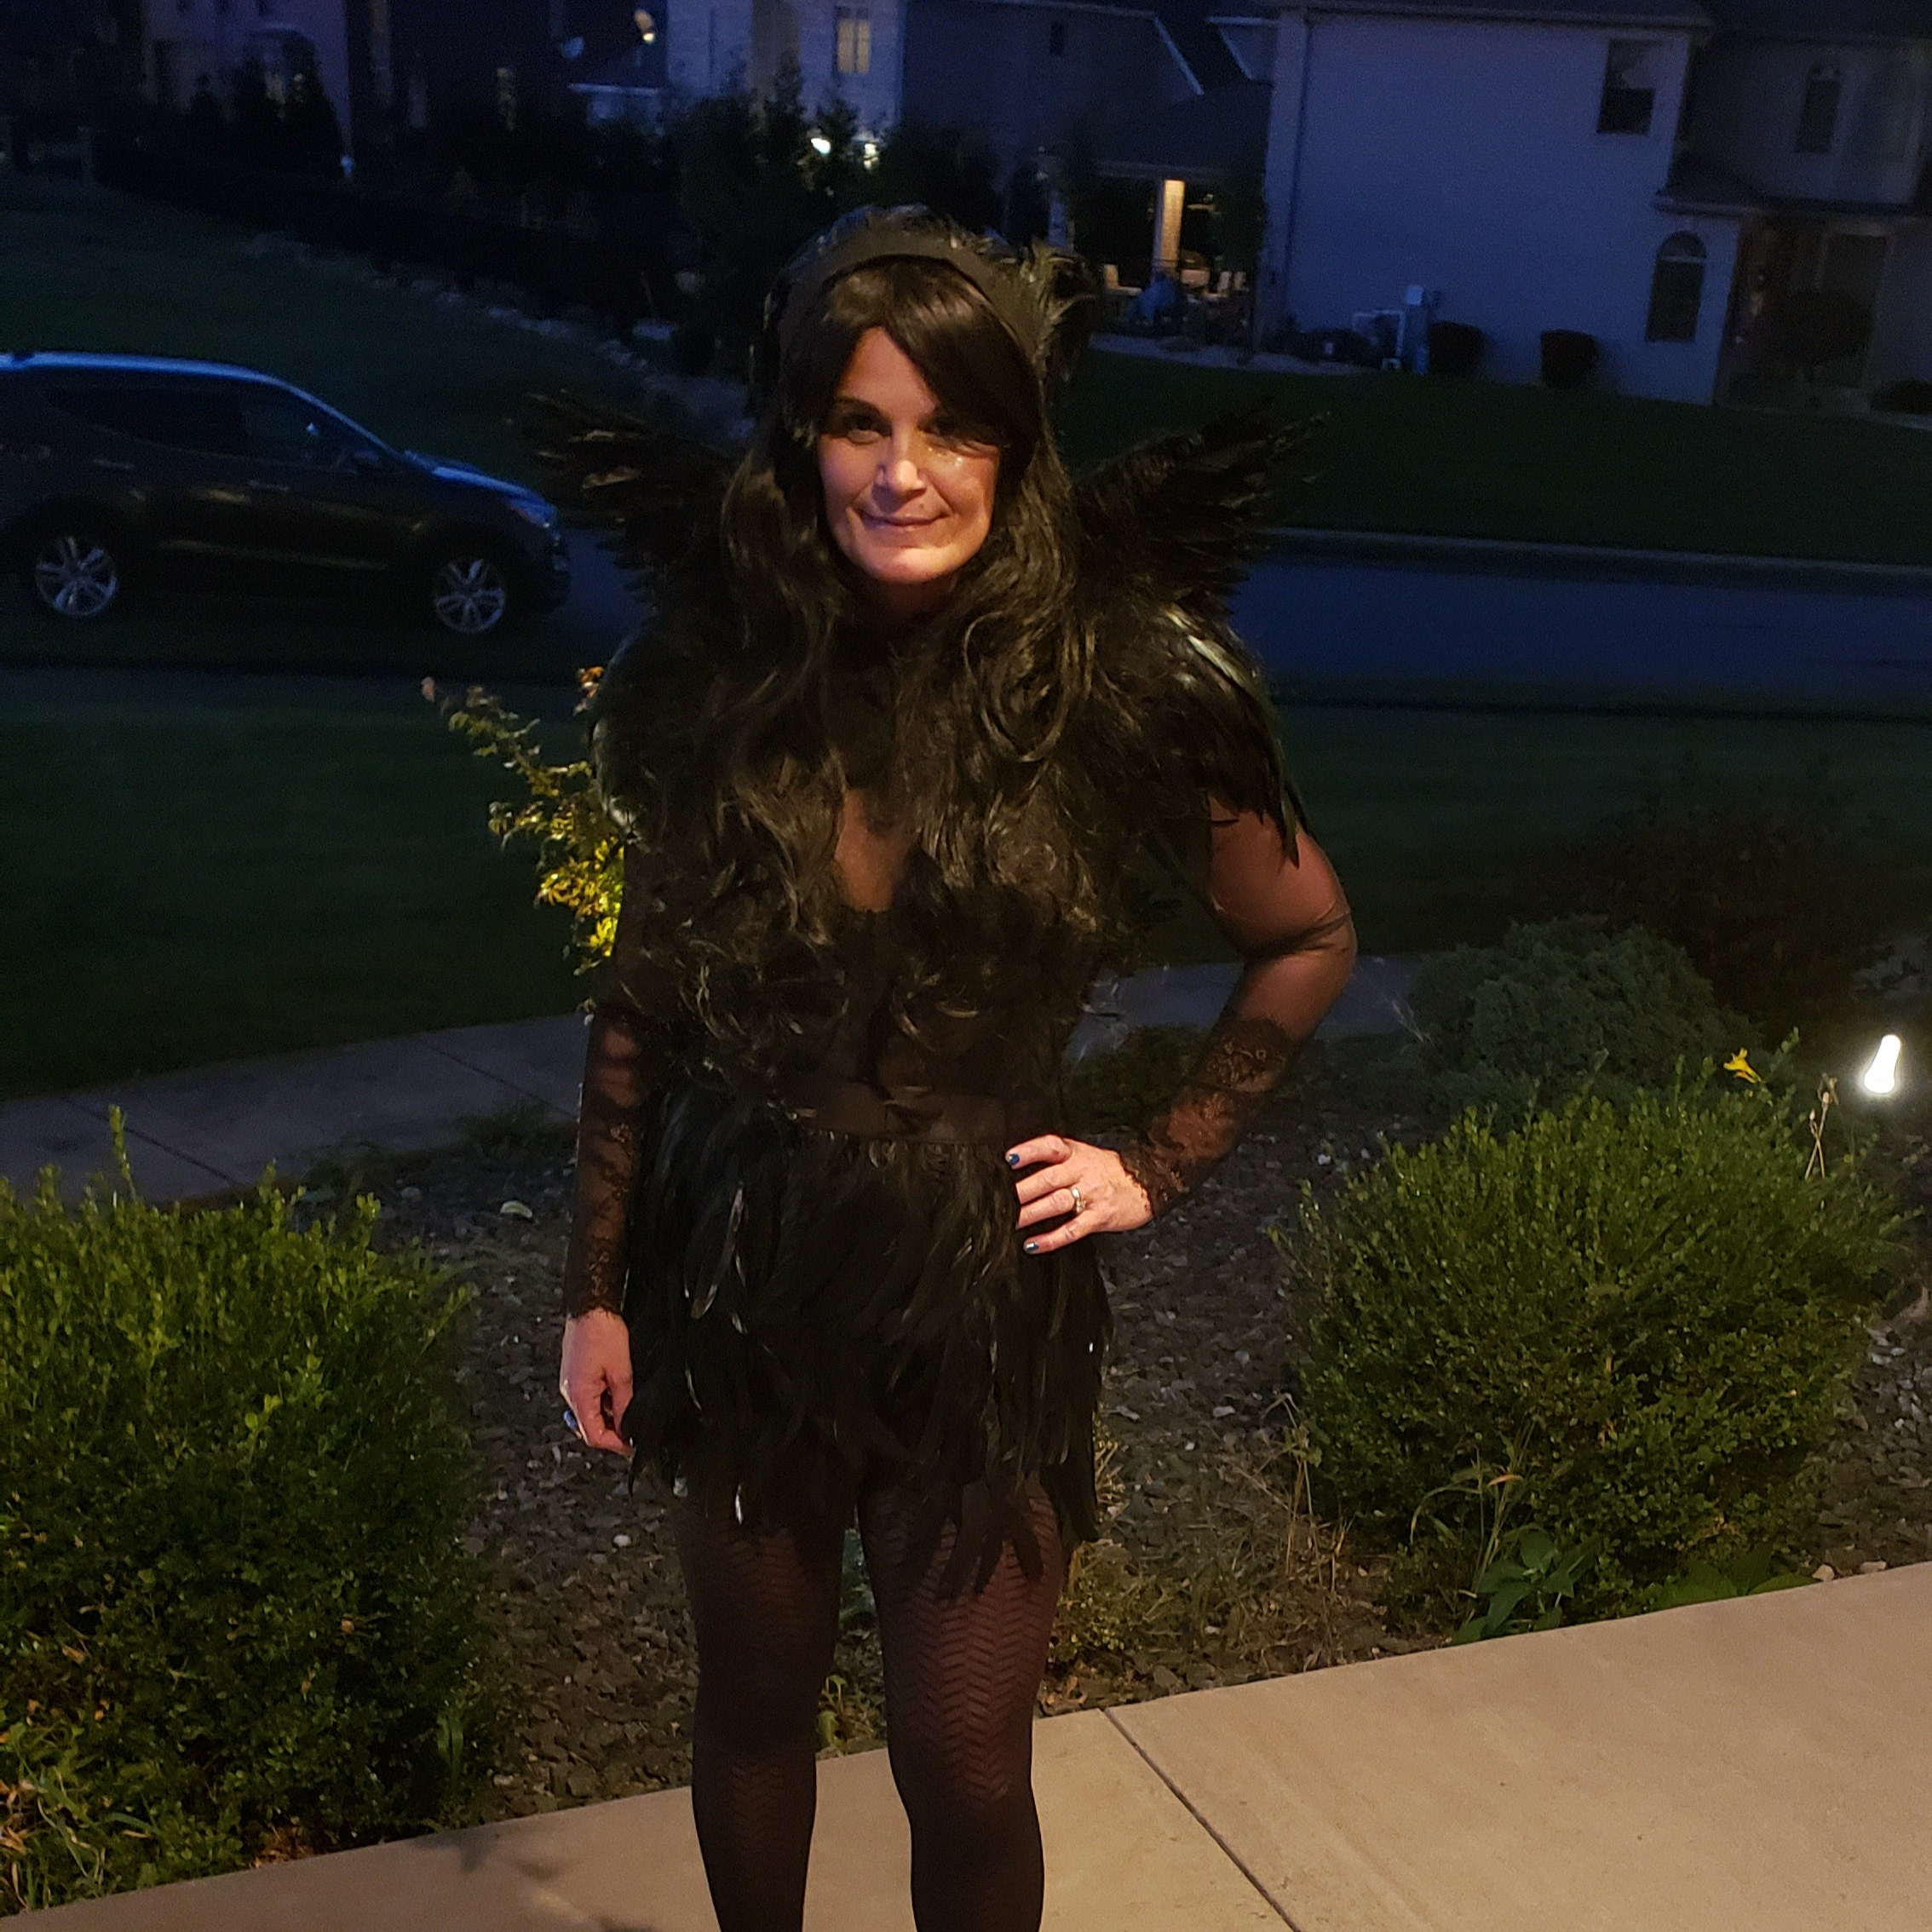 nicastrochristina added a photo of their purchase